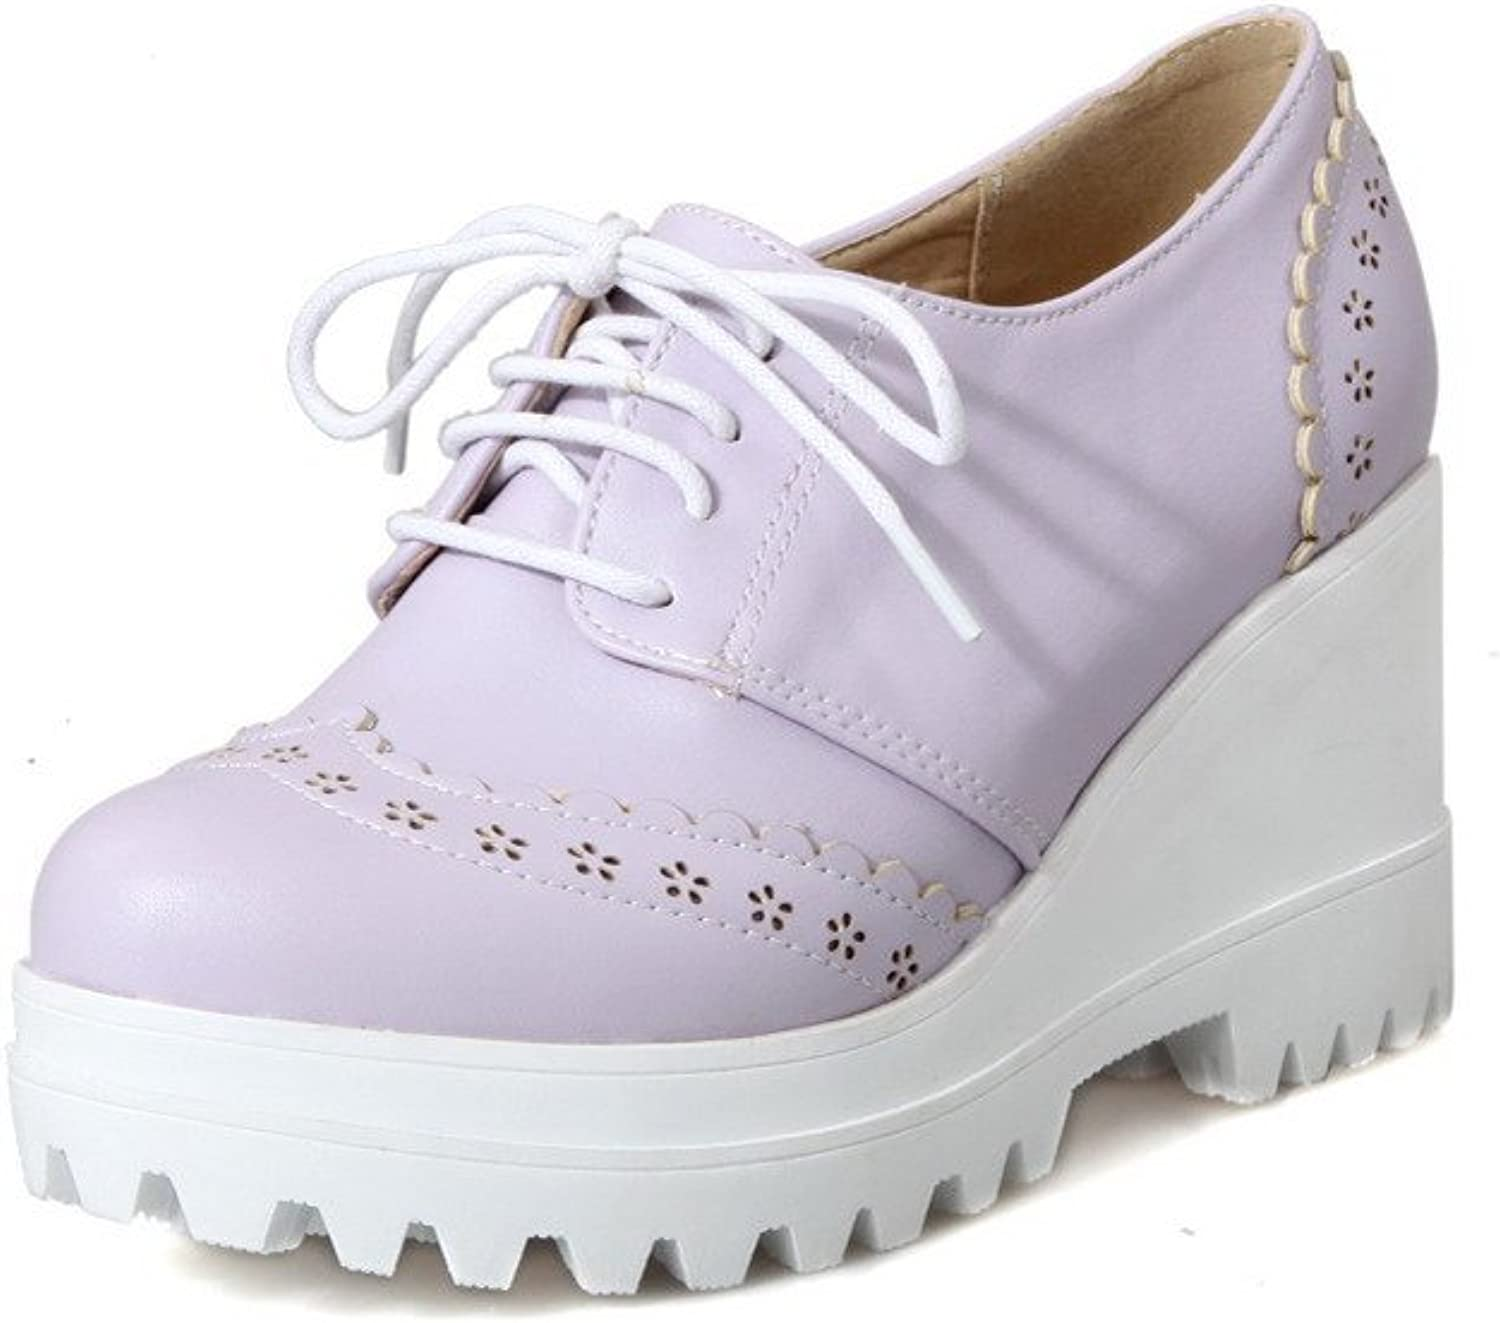 WeiPoot Women's Round Closed Toe Lace-up PU Solid High-Heels Pumps-shoes